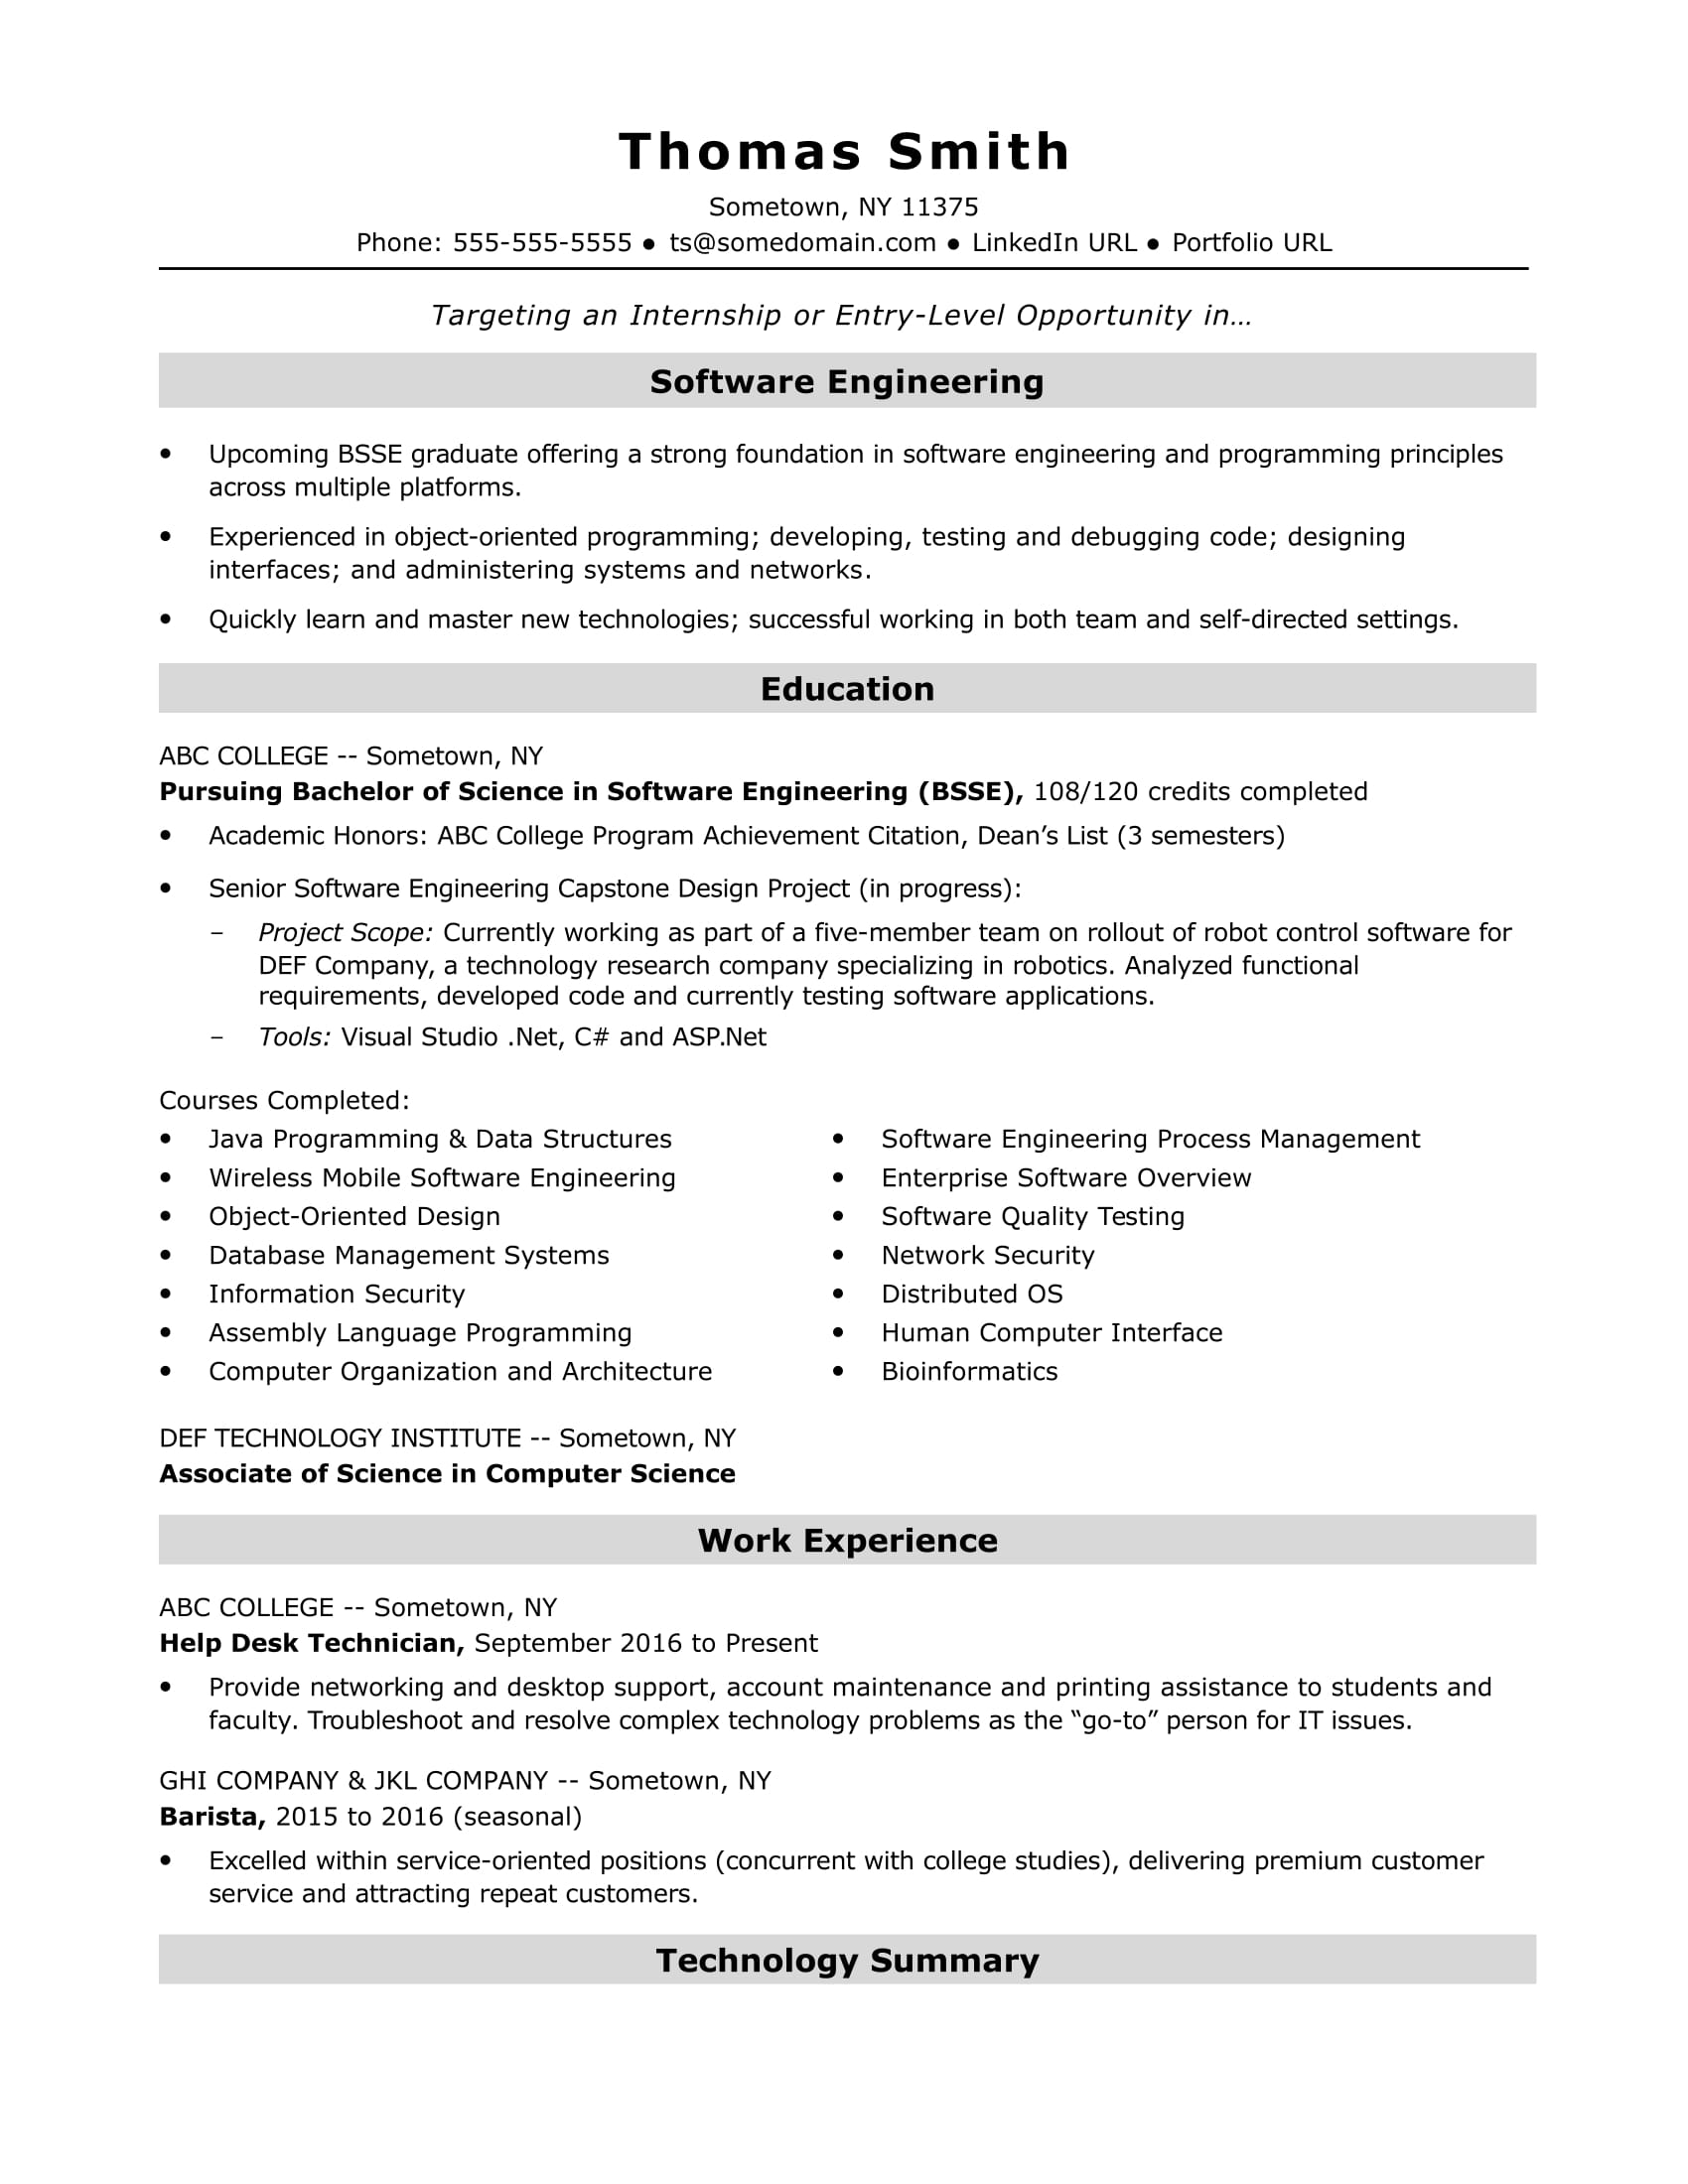 sample resume for an entry level software engineer - Resume Samples